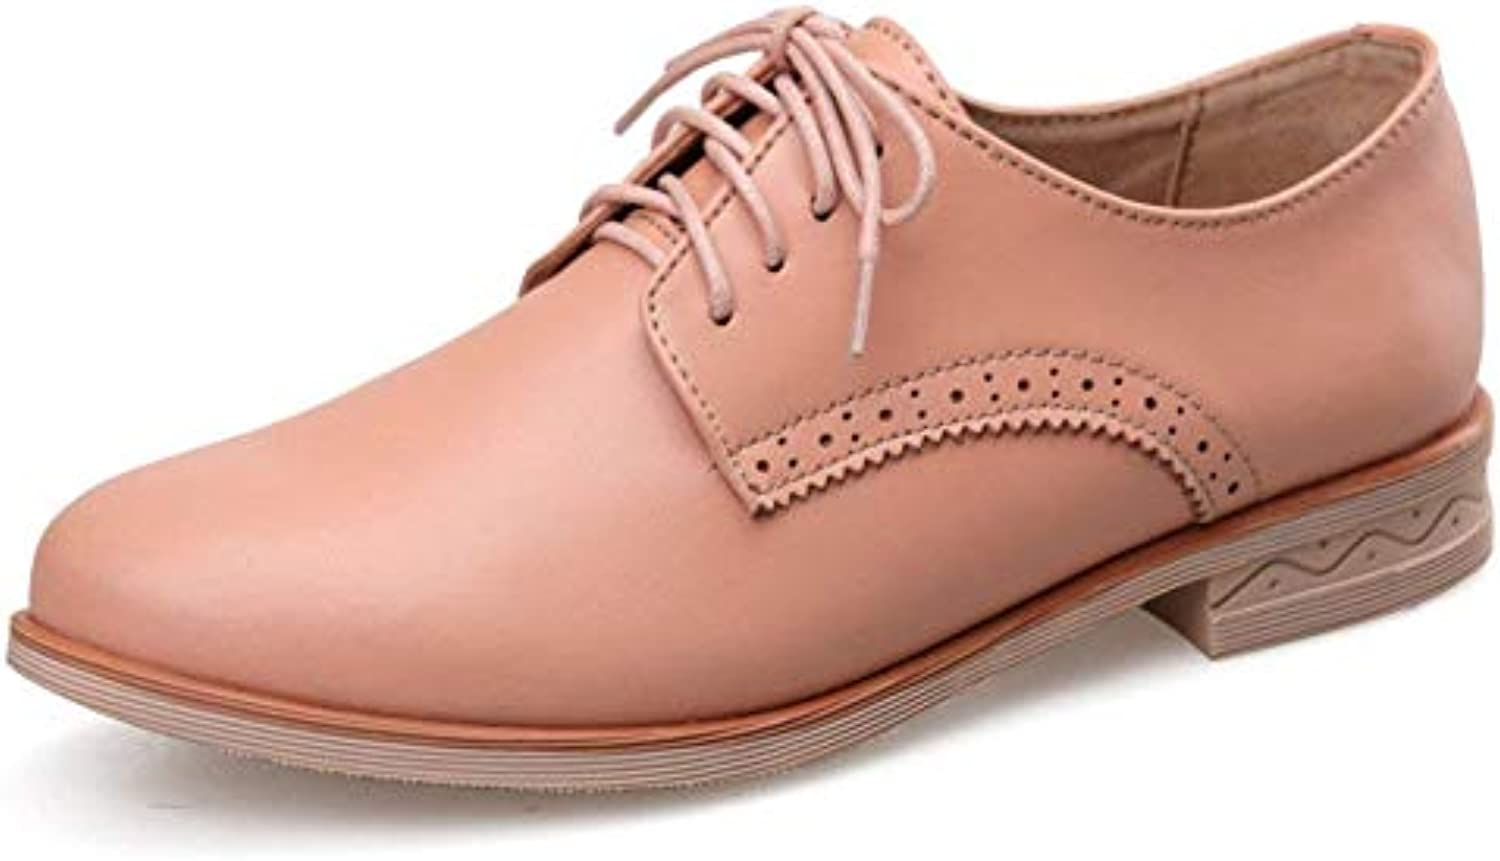 ba055ab4ea0f8c ZCW Casual Versatile Shoes  65292 In England Womens Shoes